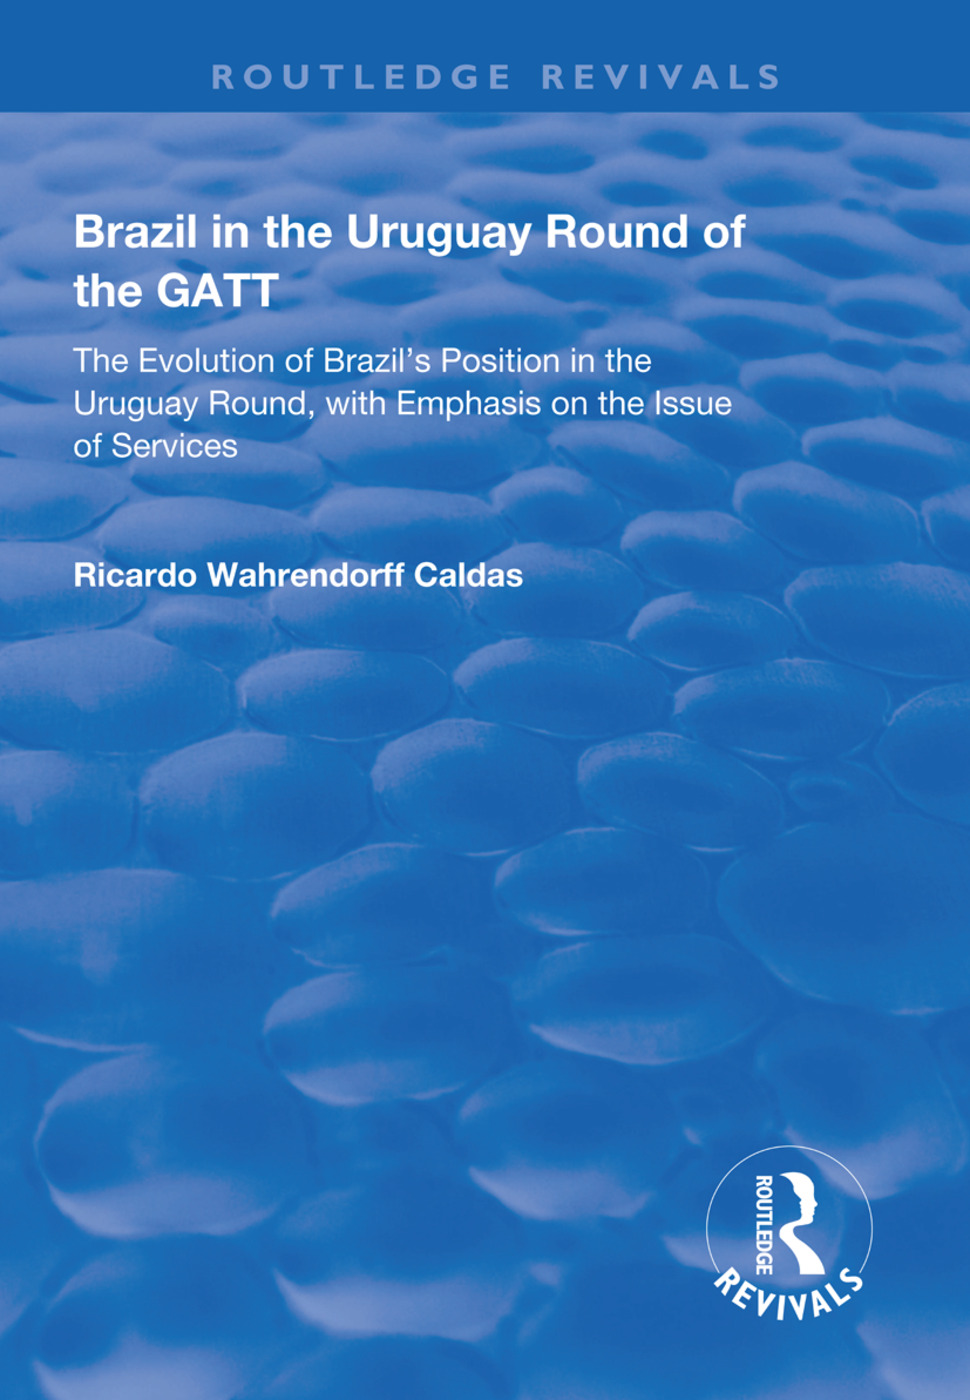 Brazil in the Uruguay Round of the GATT: The Evolution of Brazil's Position in the Uruguay Round, with Emphasis on the Issue of Services book cover